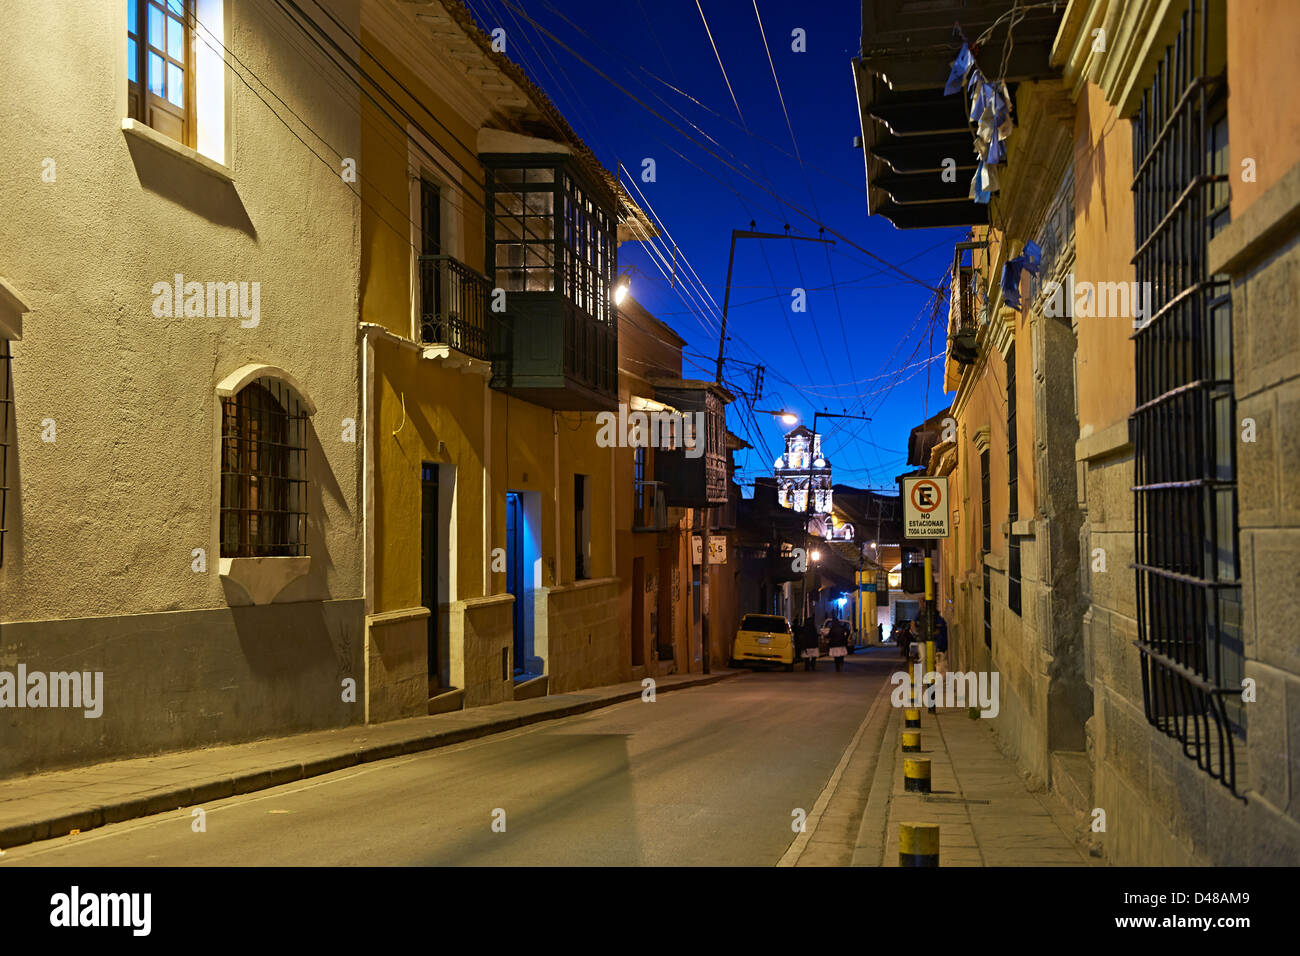 night shot colonial architecture in the streets of Potosi, Bolivia, South America - Stock Image